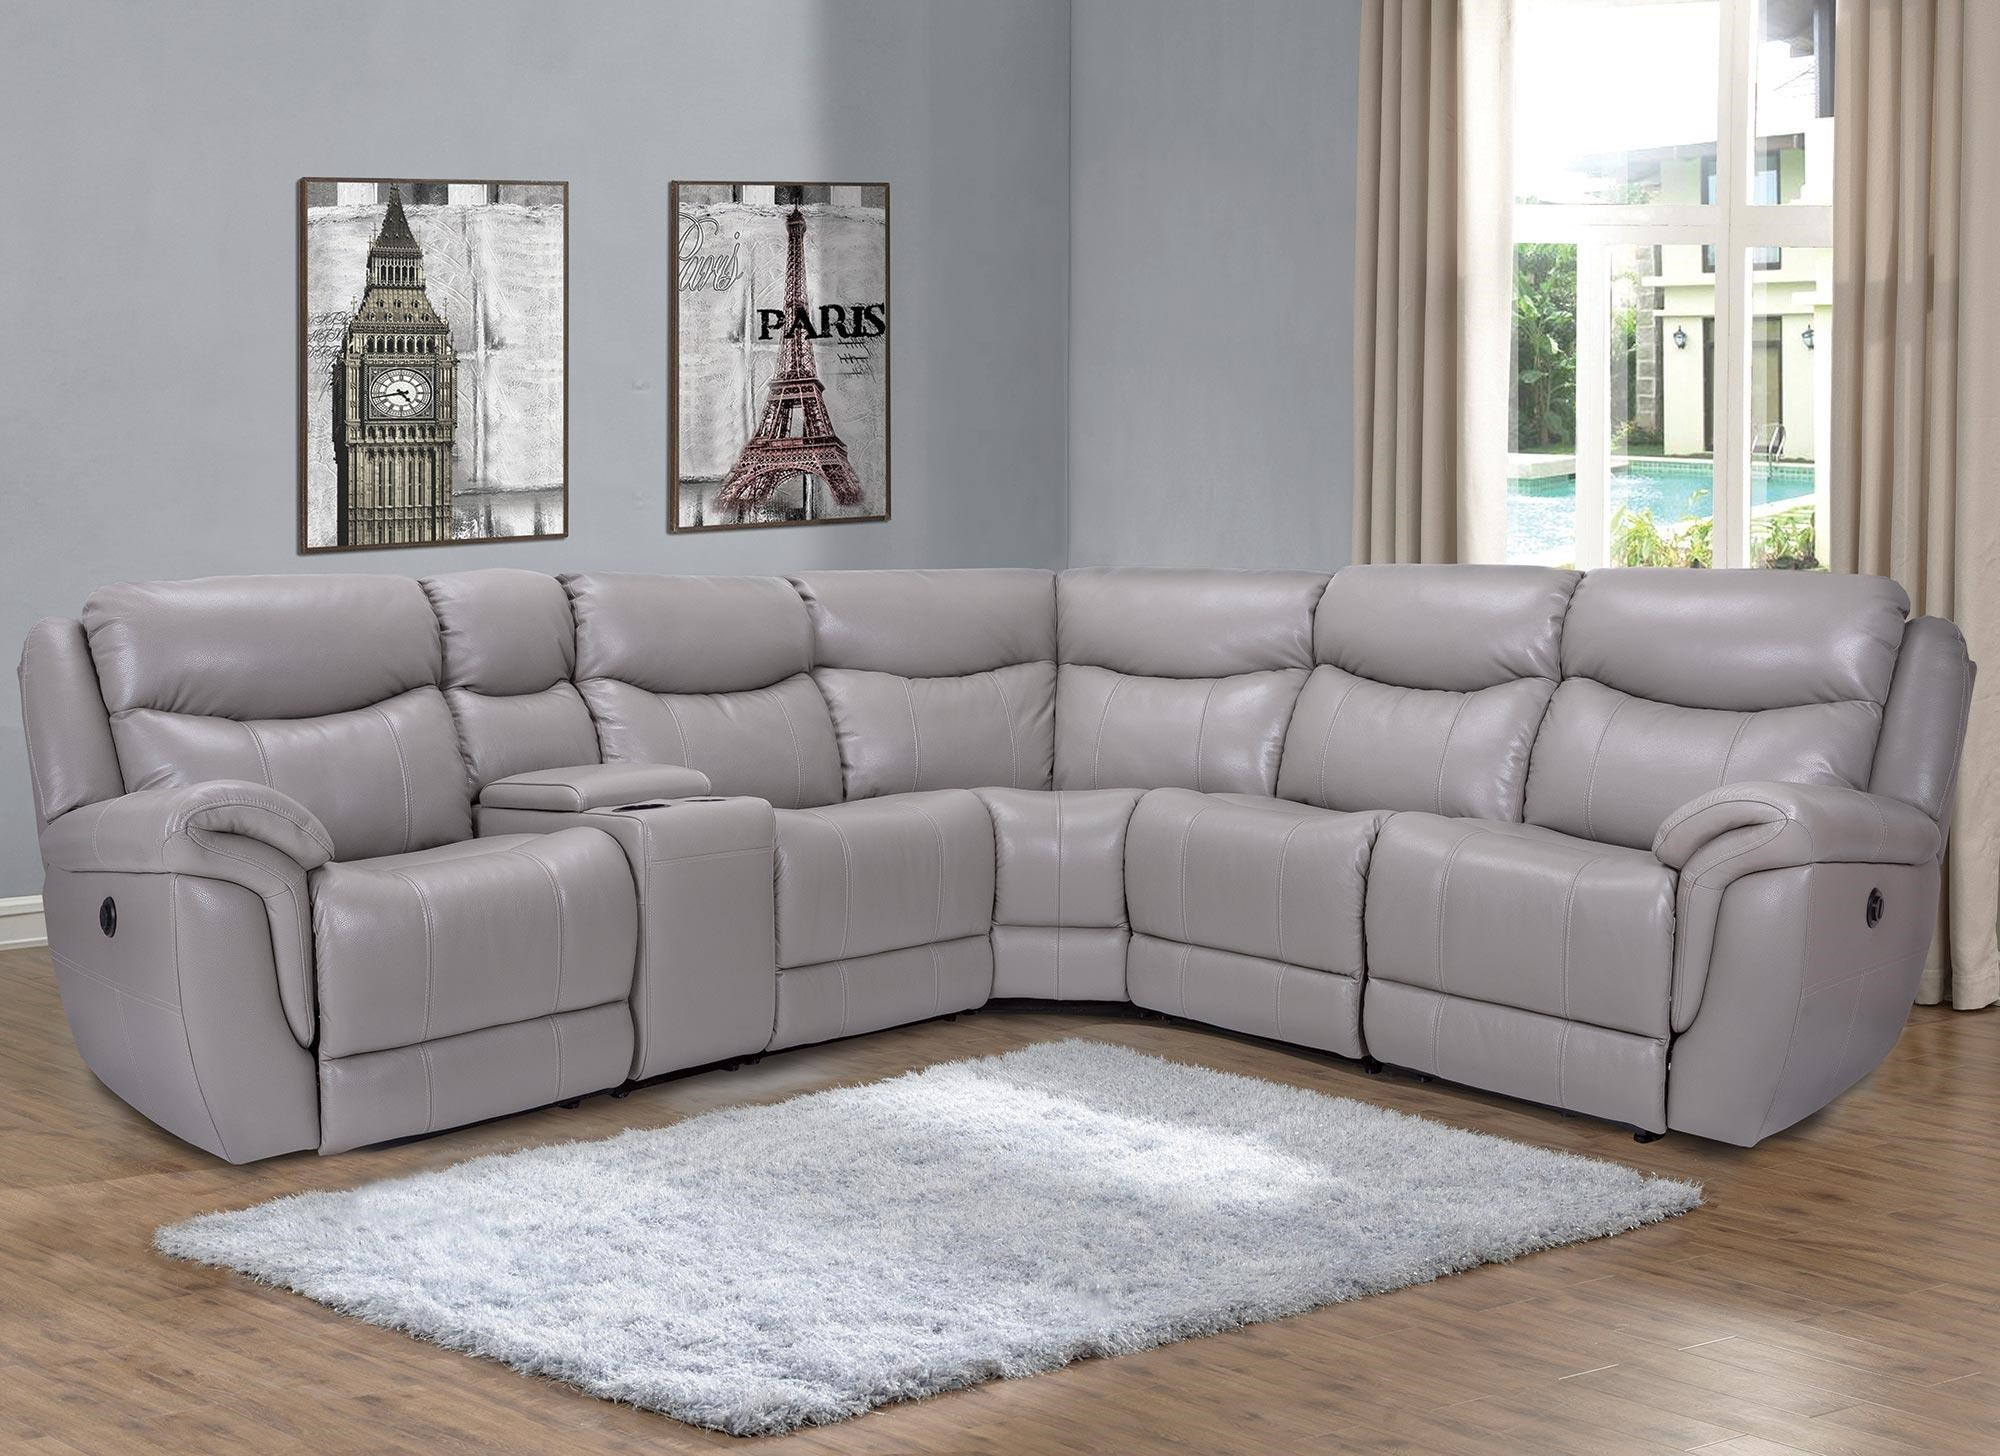 Trieste 6pc Power Reclining Leather Sectional